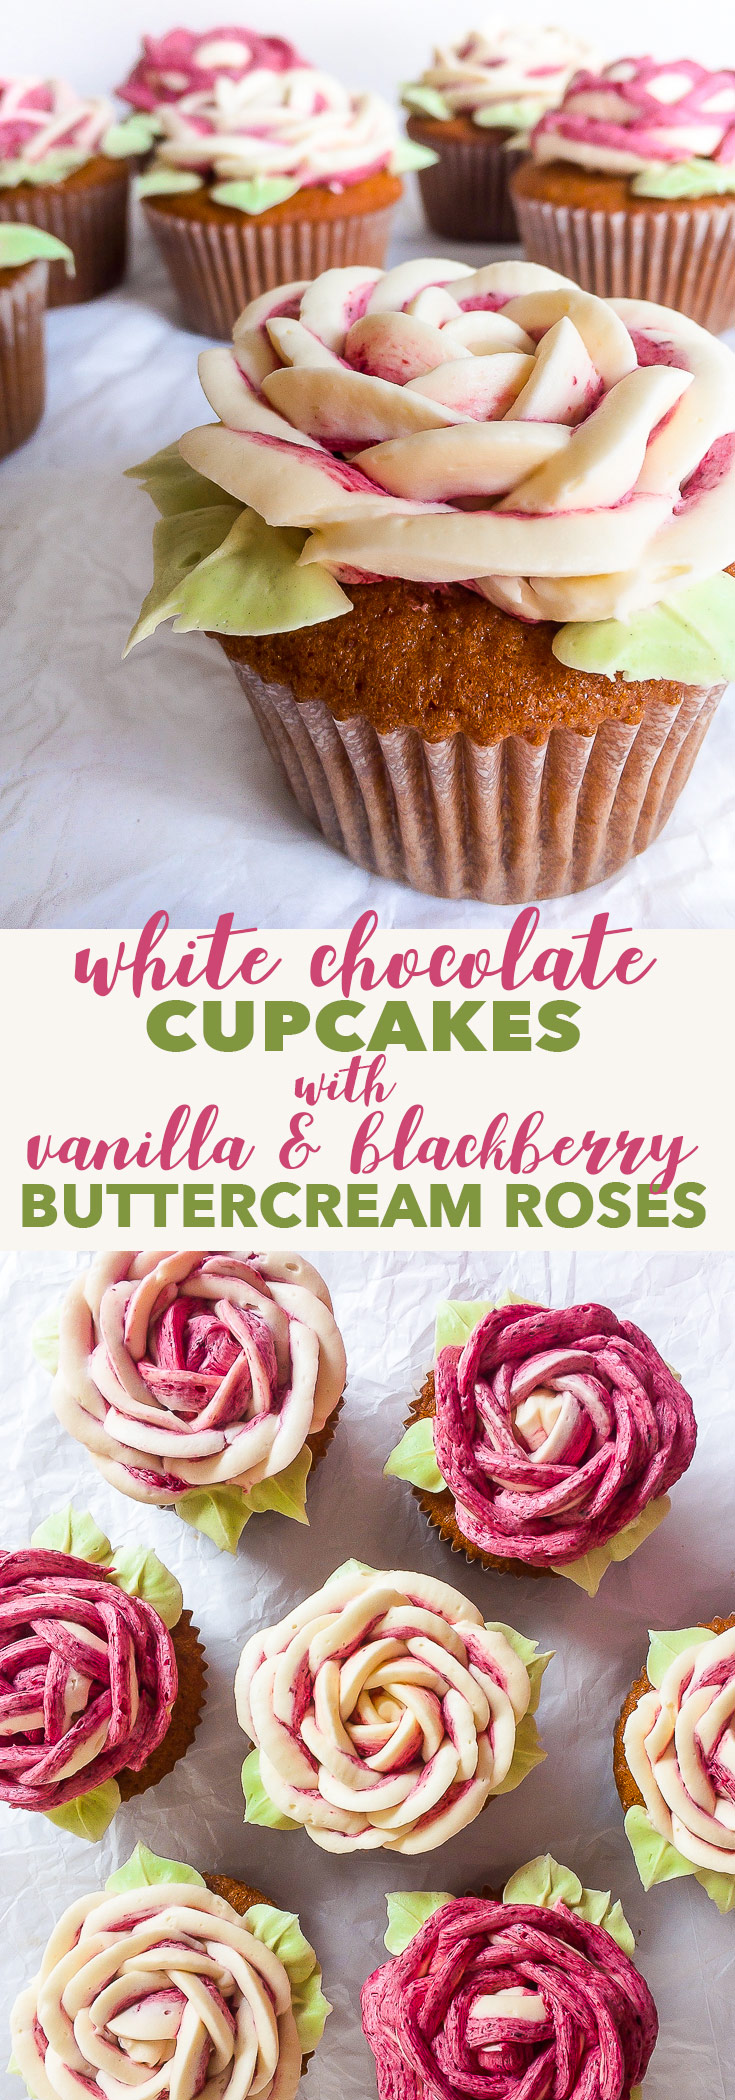 White Chocolate Cupcakes with Vanilla & Blackberry Buttercream Roses {soy & nut free, gluten free option} - These white chocolate cupcakes with vanilla & blackberry buttercream roses taste amazing and look even better. Despite looking ridiculously impressive, the buttercream roses are actually easy and quick to make, even if you haven't made them before. There's also a gluten free option!